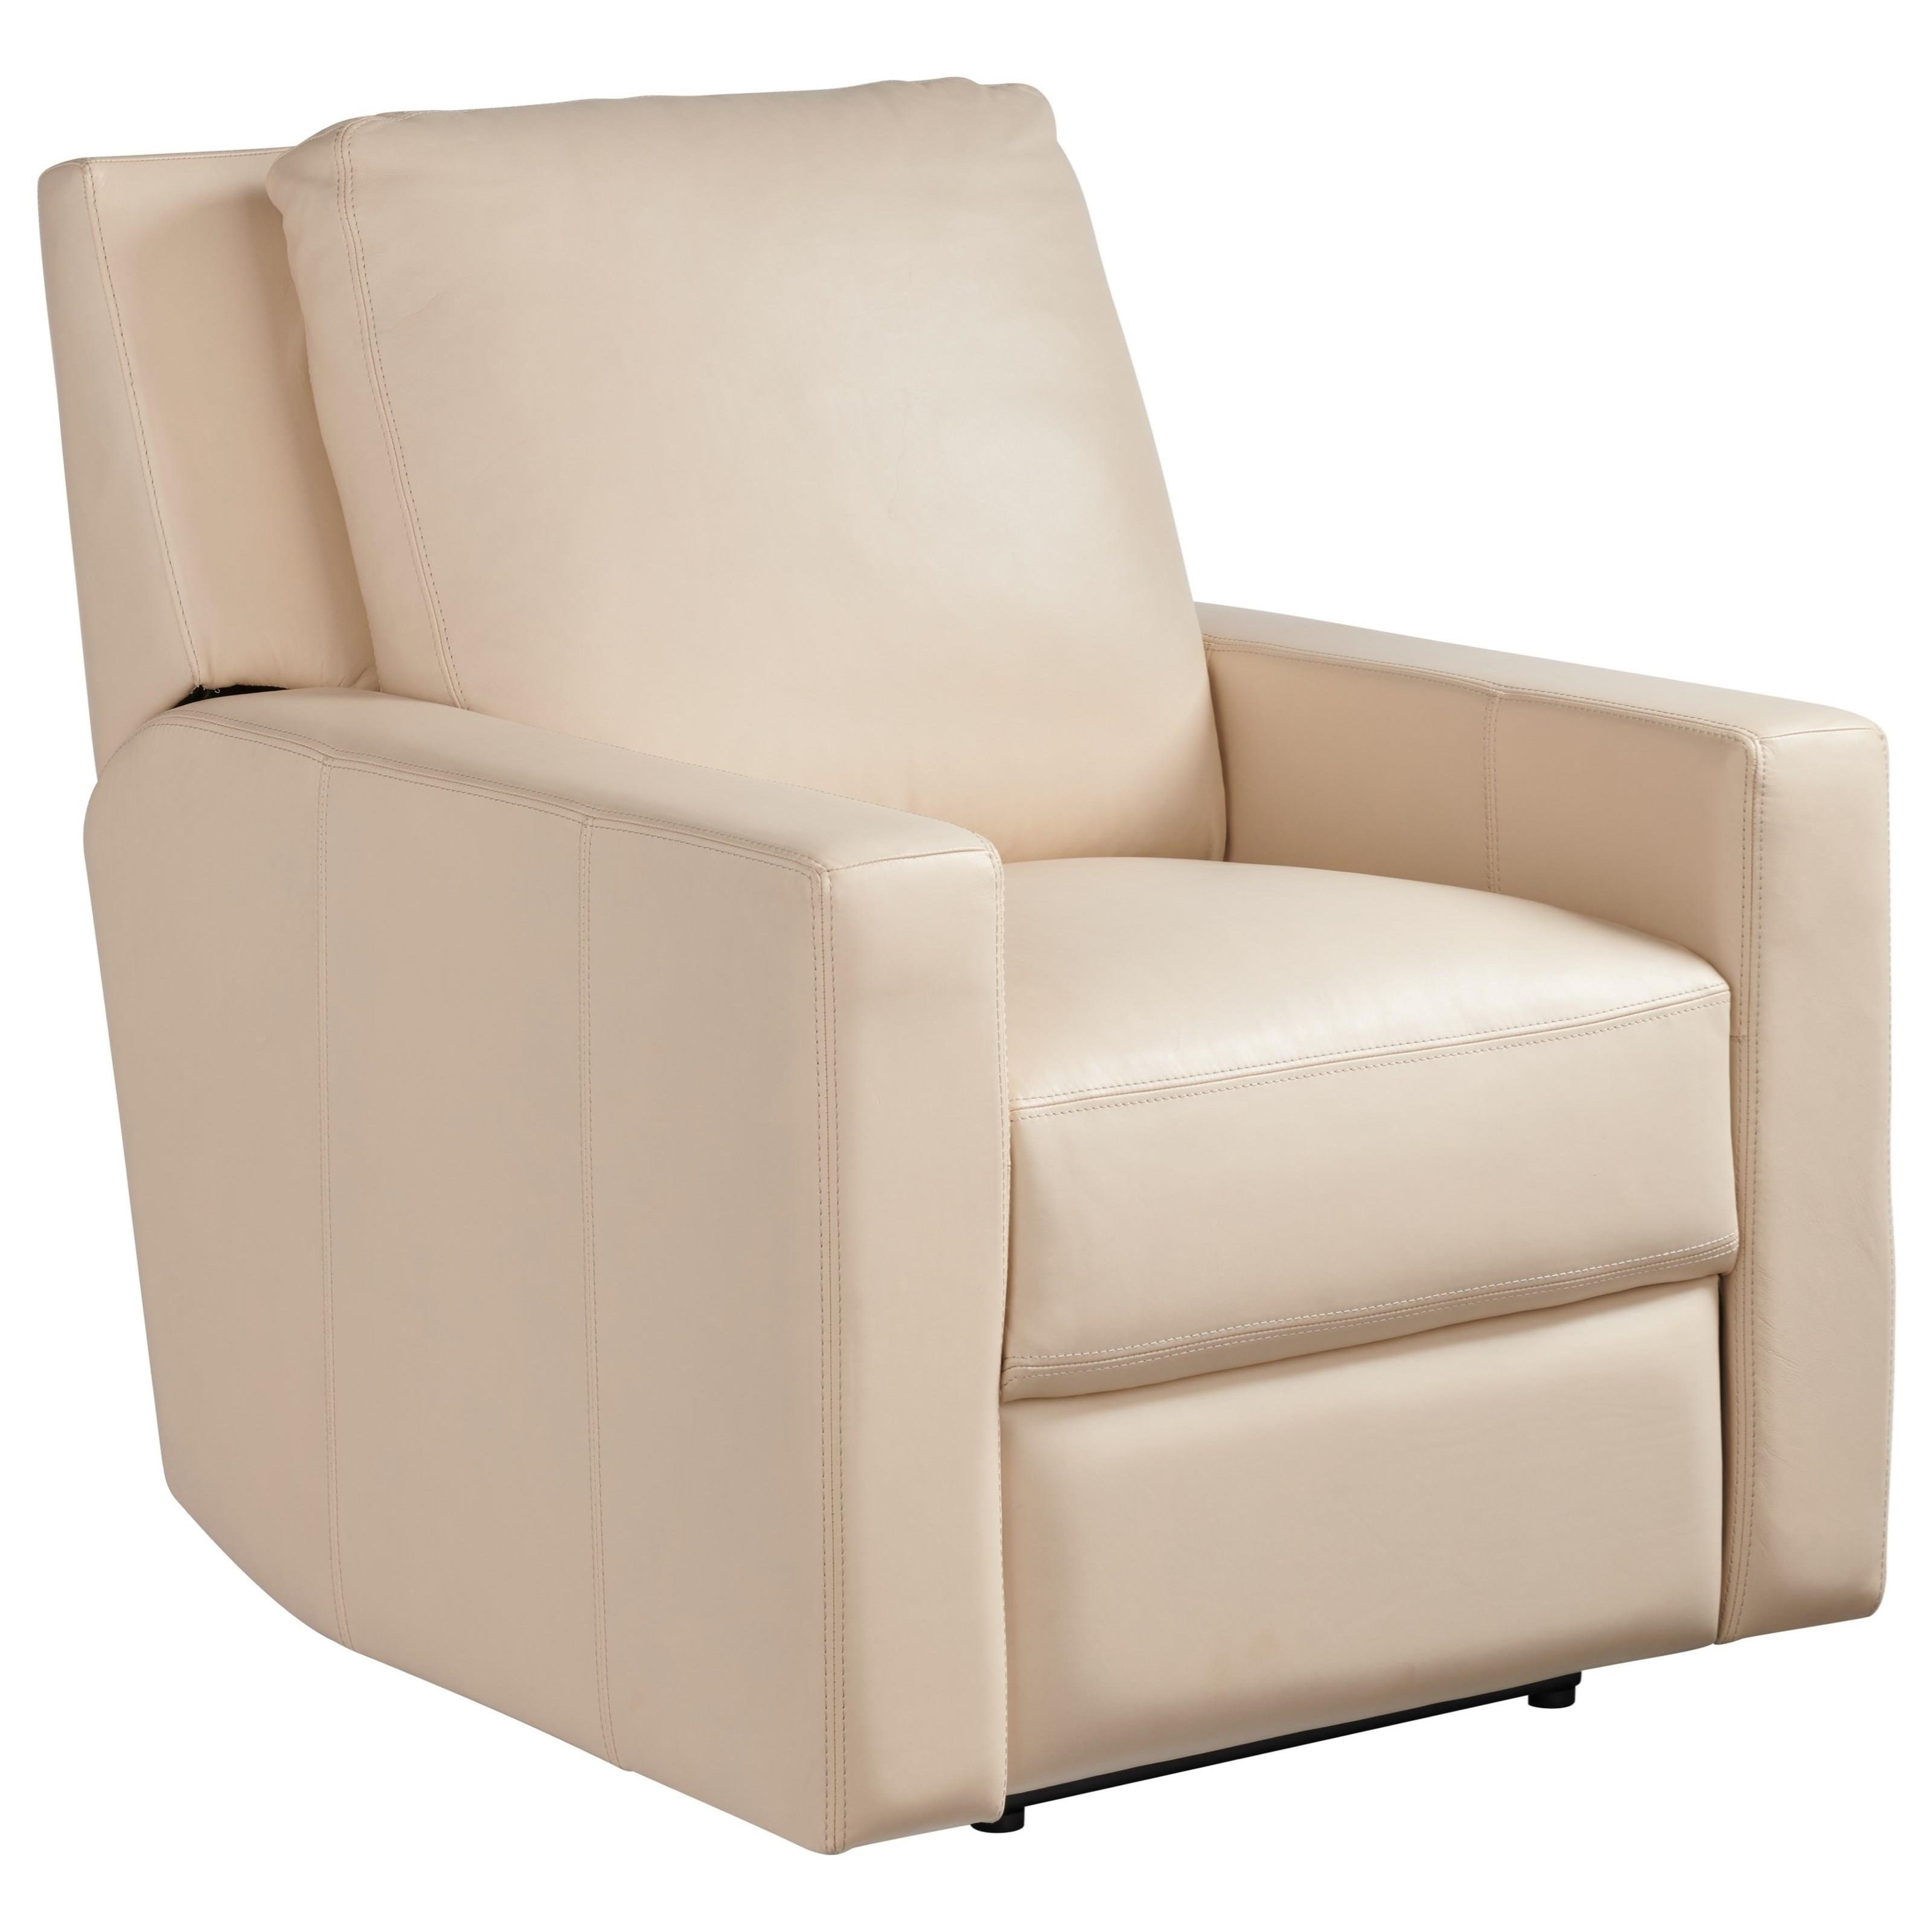 Motion Carter Motion Chair by Universal at Baer's Furniture